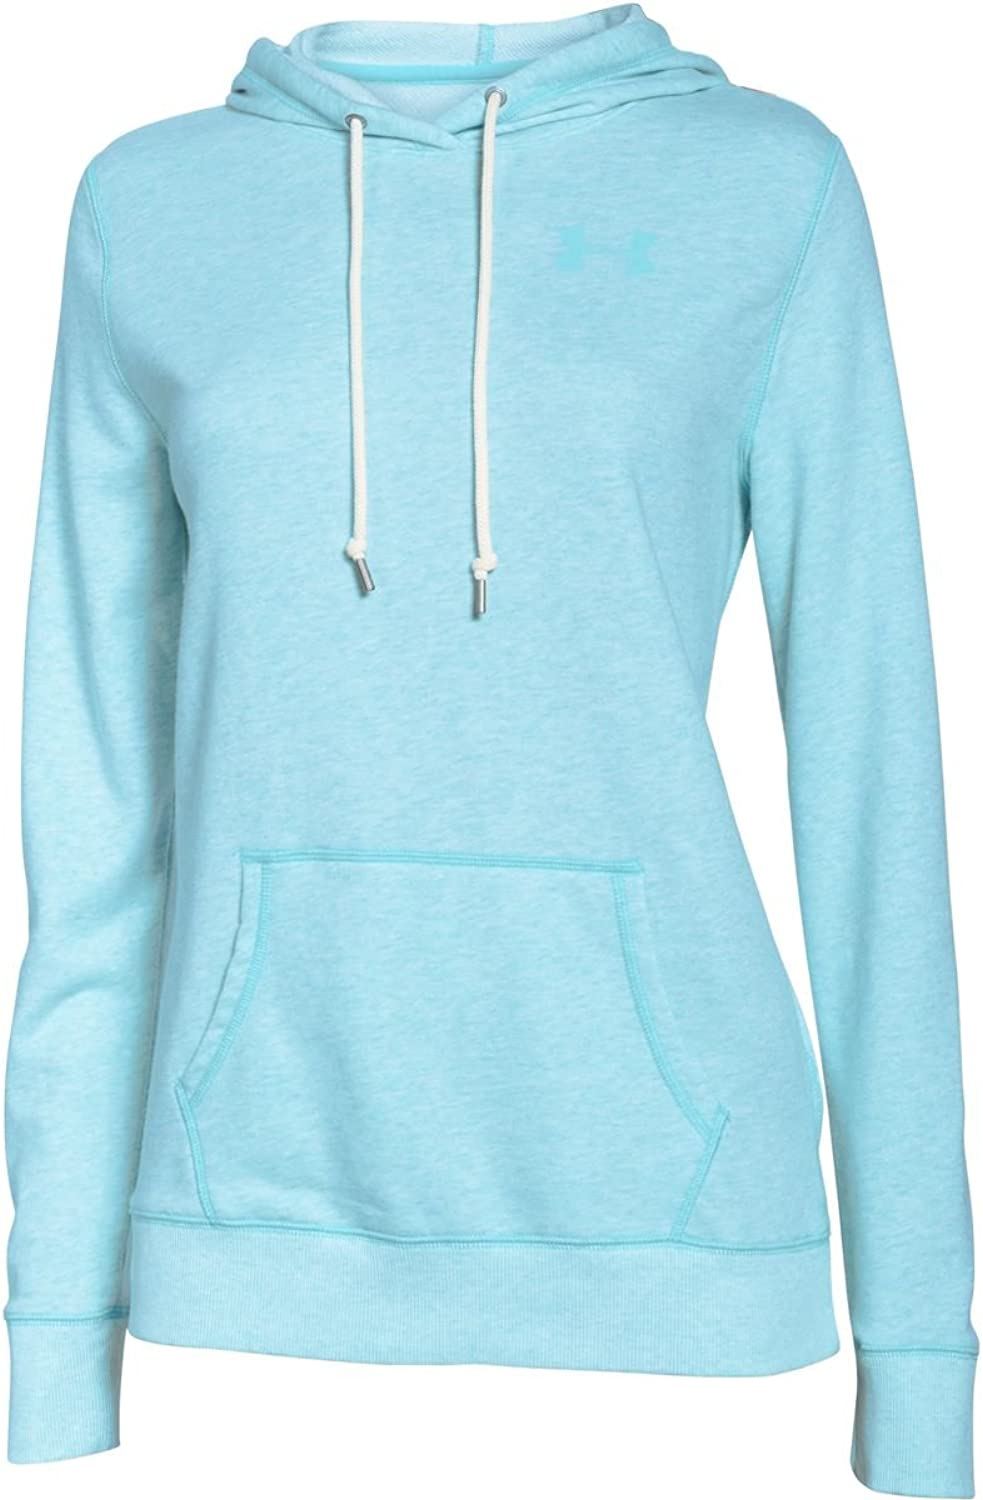 Under Armour Women 's Favorite French Terry Popover